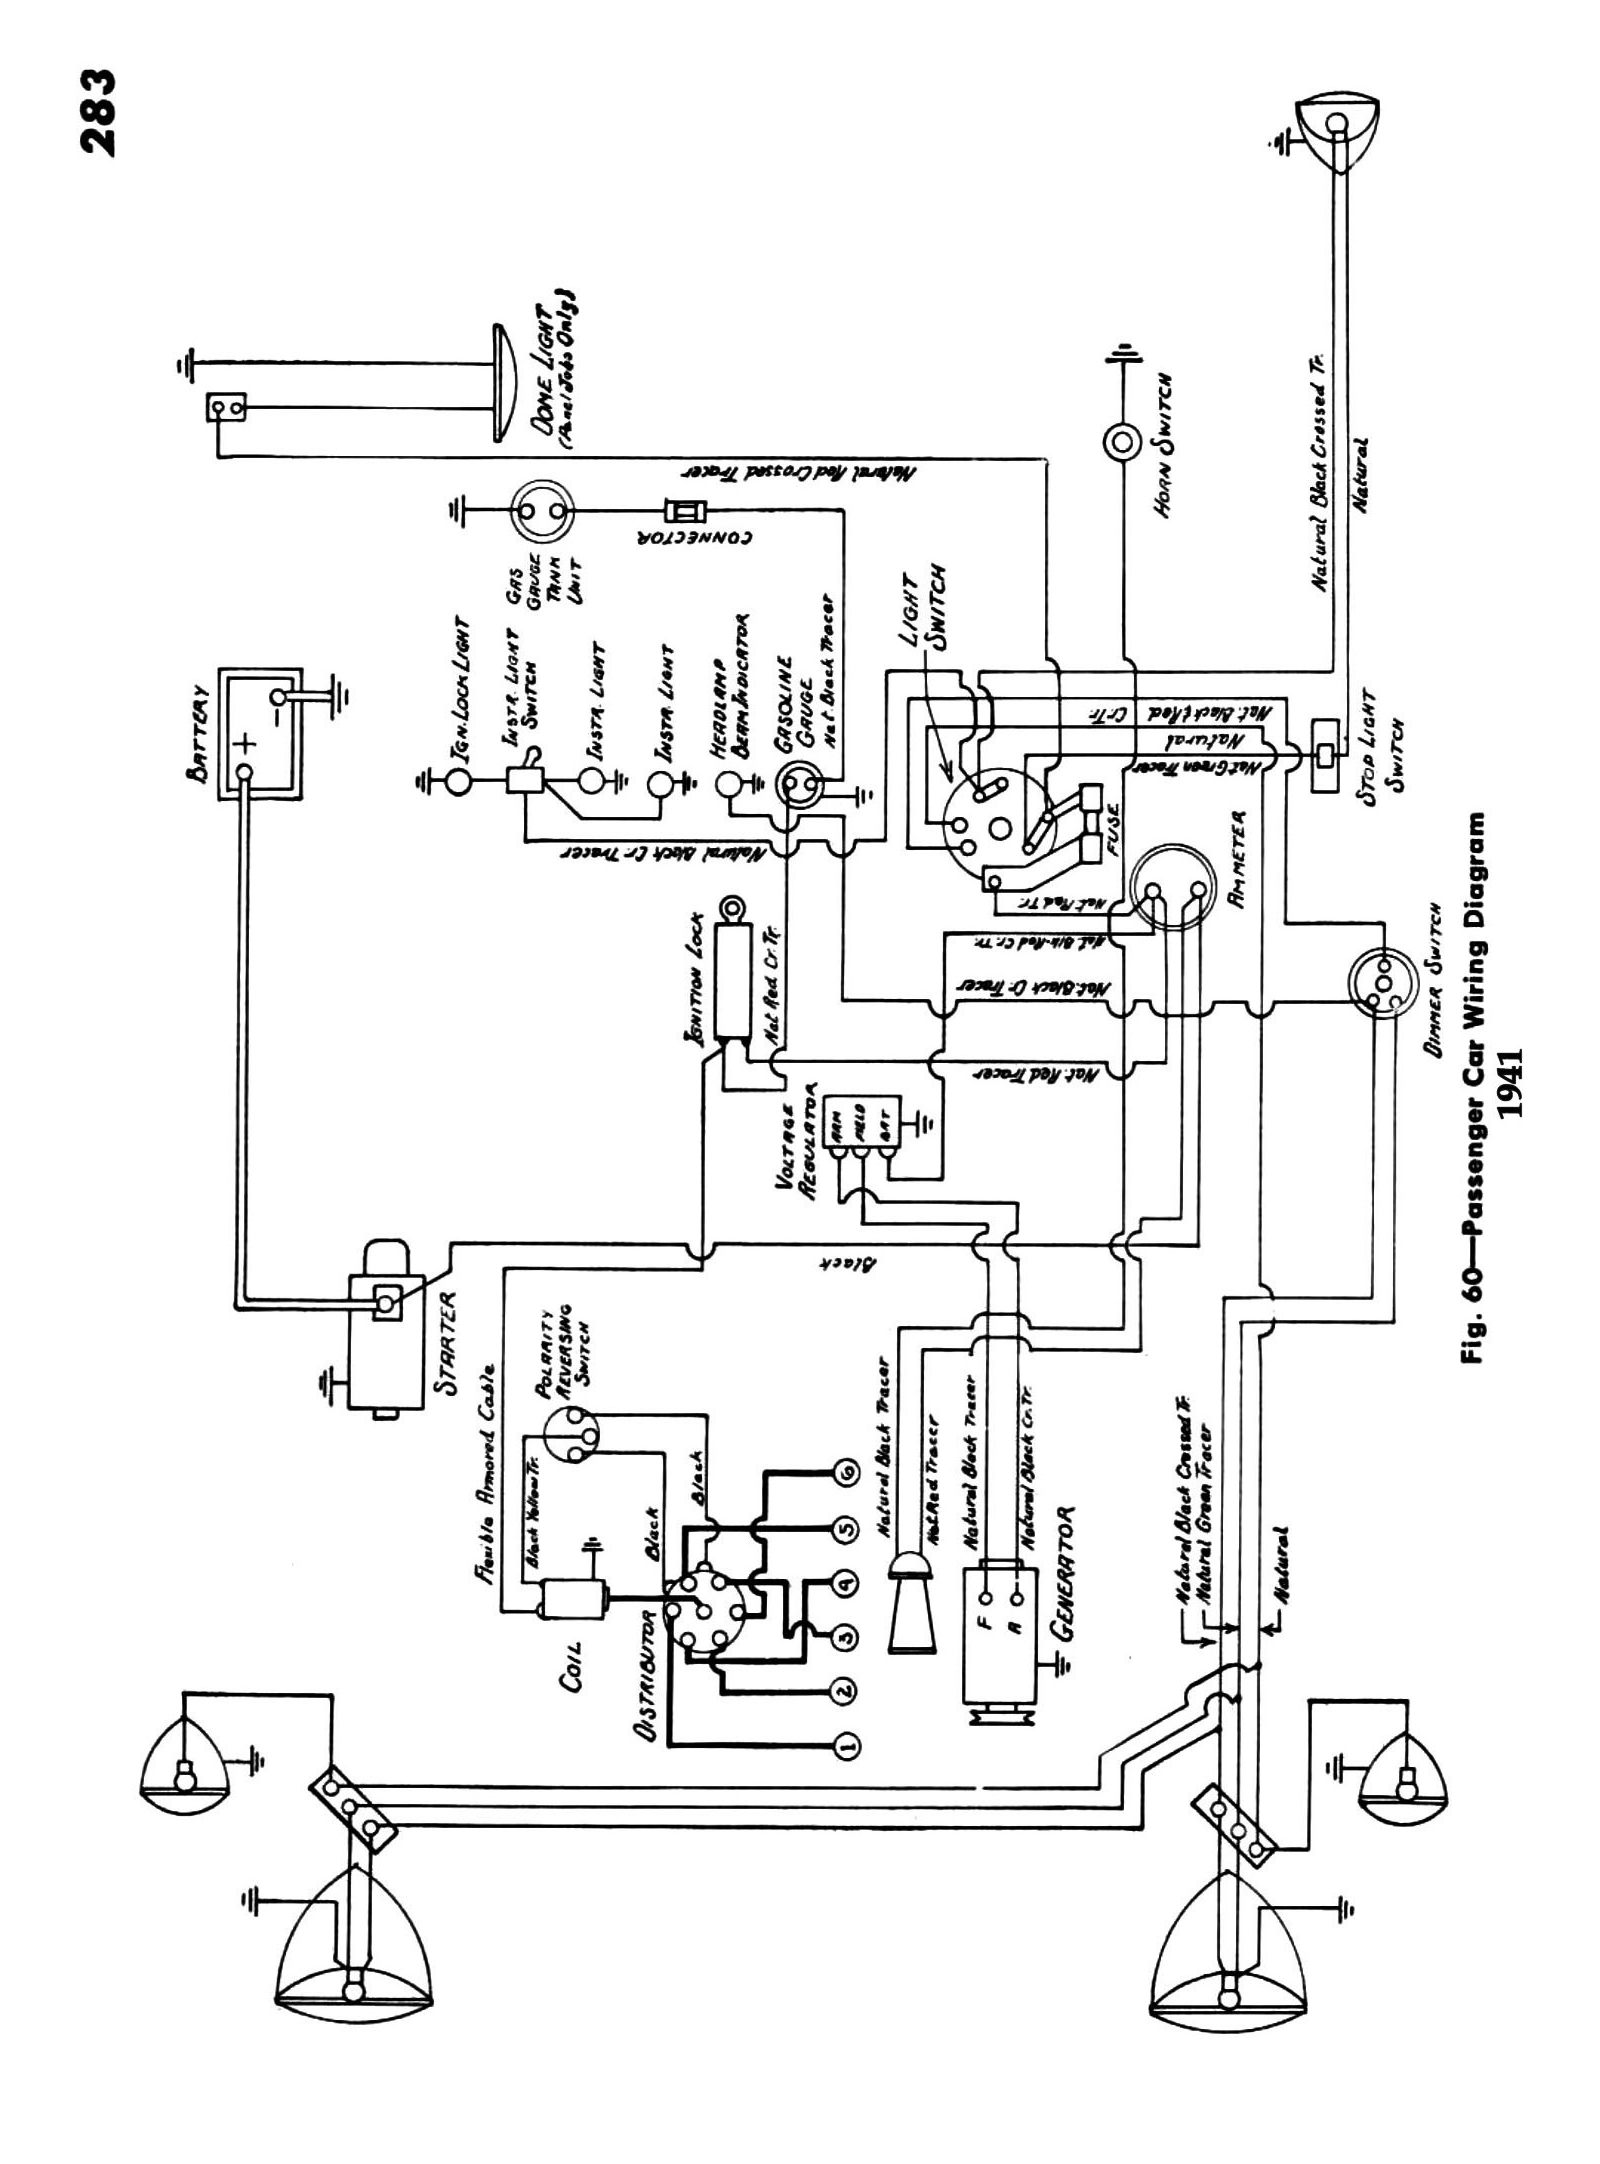 Chevy Generator Wiring Simple Diagram Site Harley Fl Chevrolet Schematics Emergency 1950